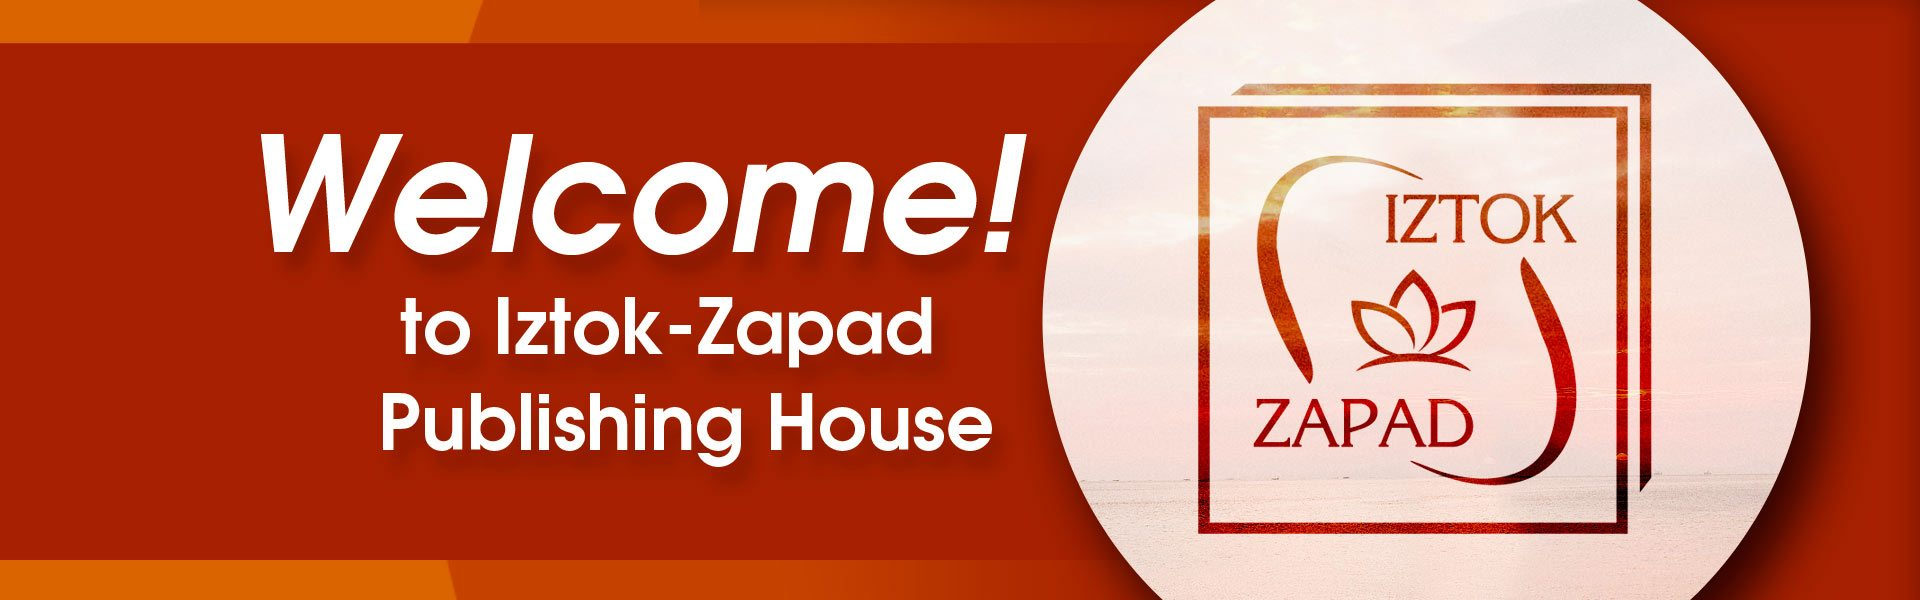 Welcome to Iztok-Zapad Publishing House